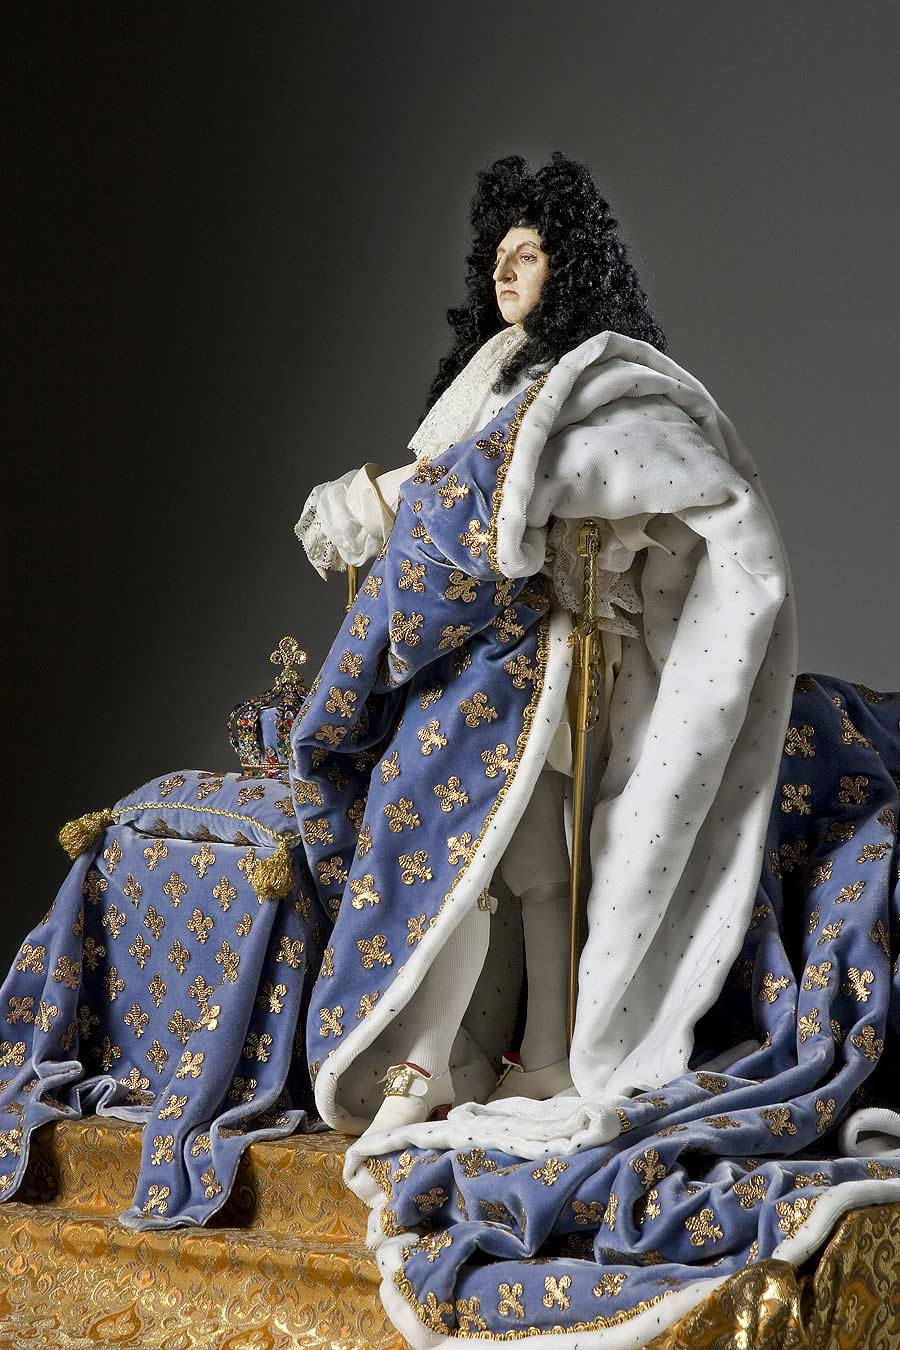 Louis XIV – robes of state | Life at court was a series of spectacles and ceremonies with Louis as the focus.